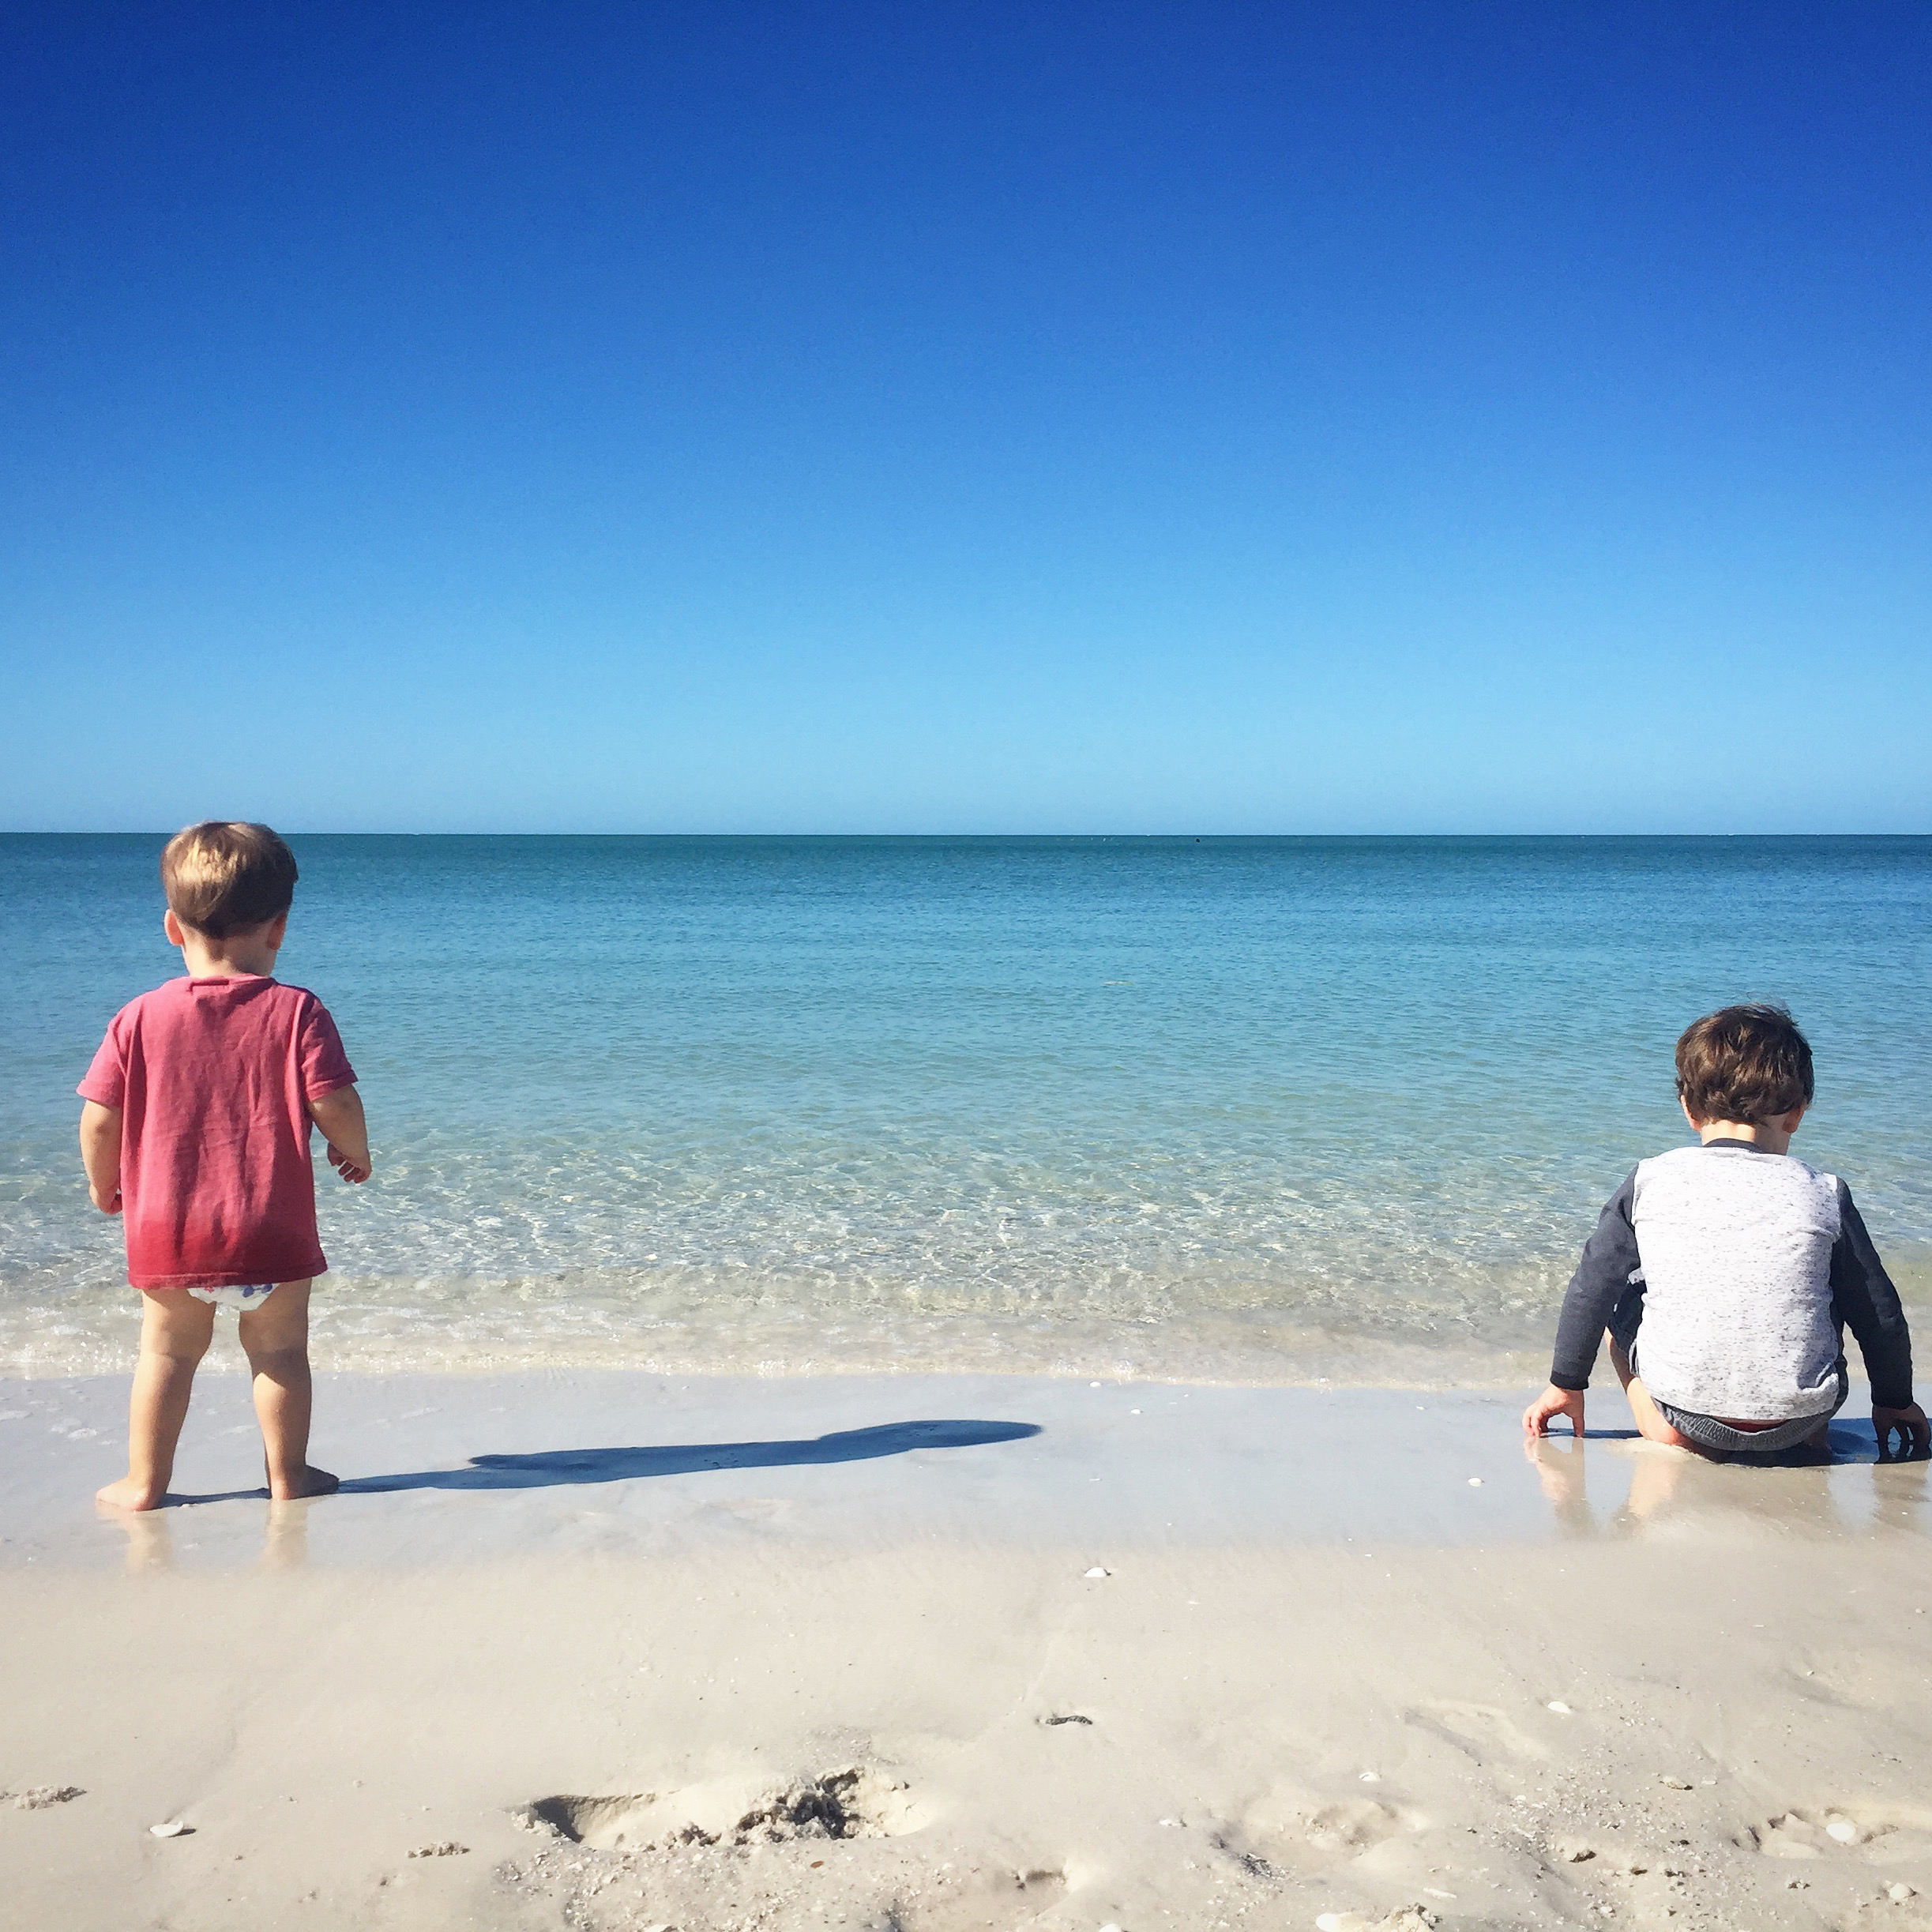 week in review: The boys at the beach